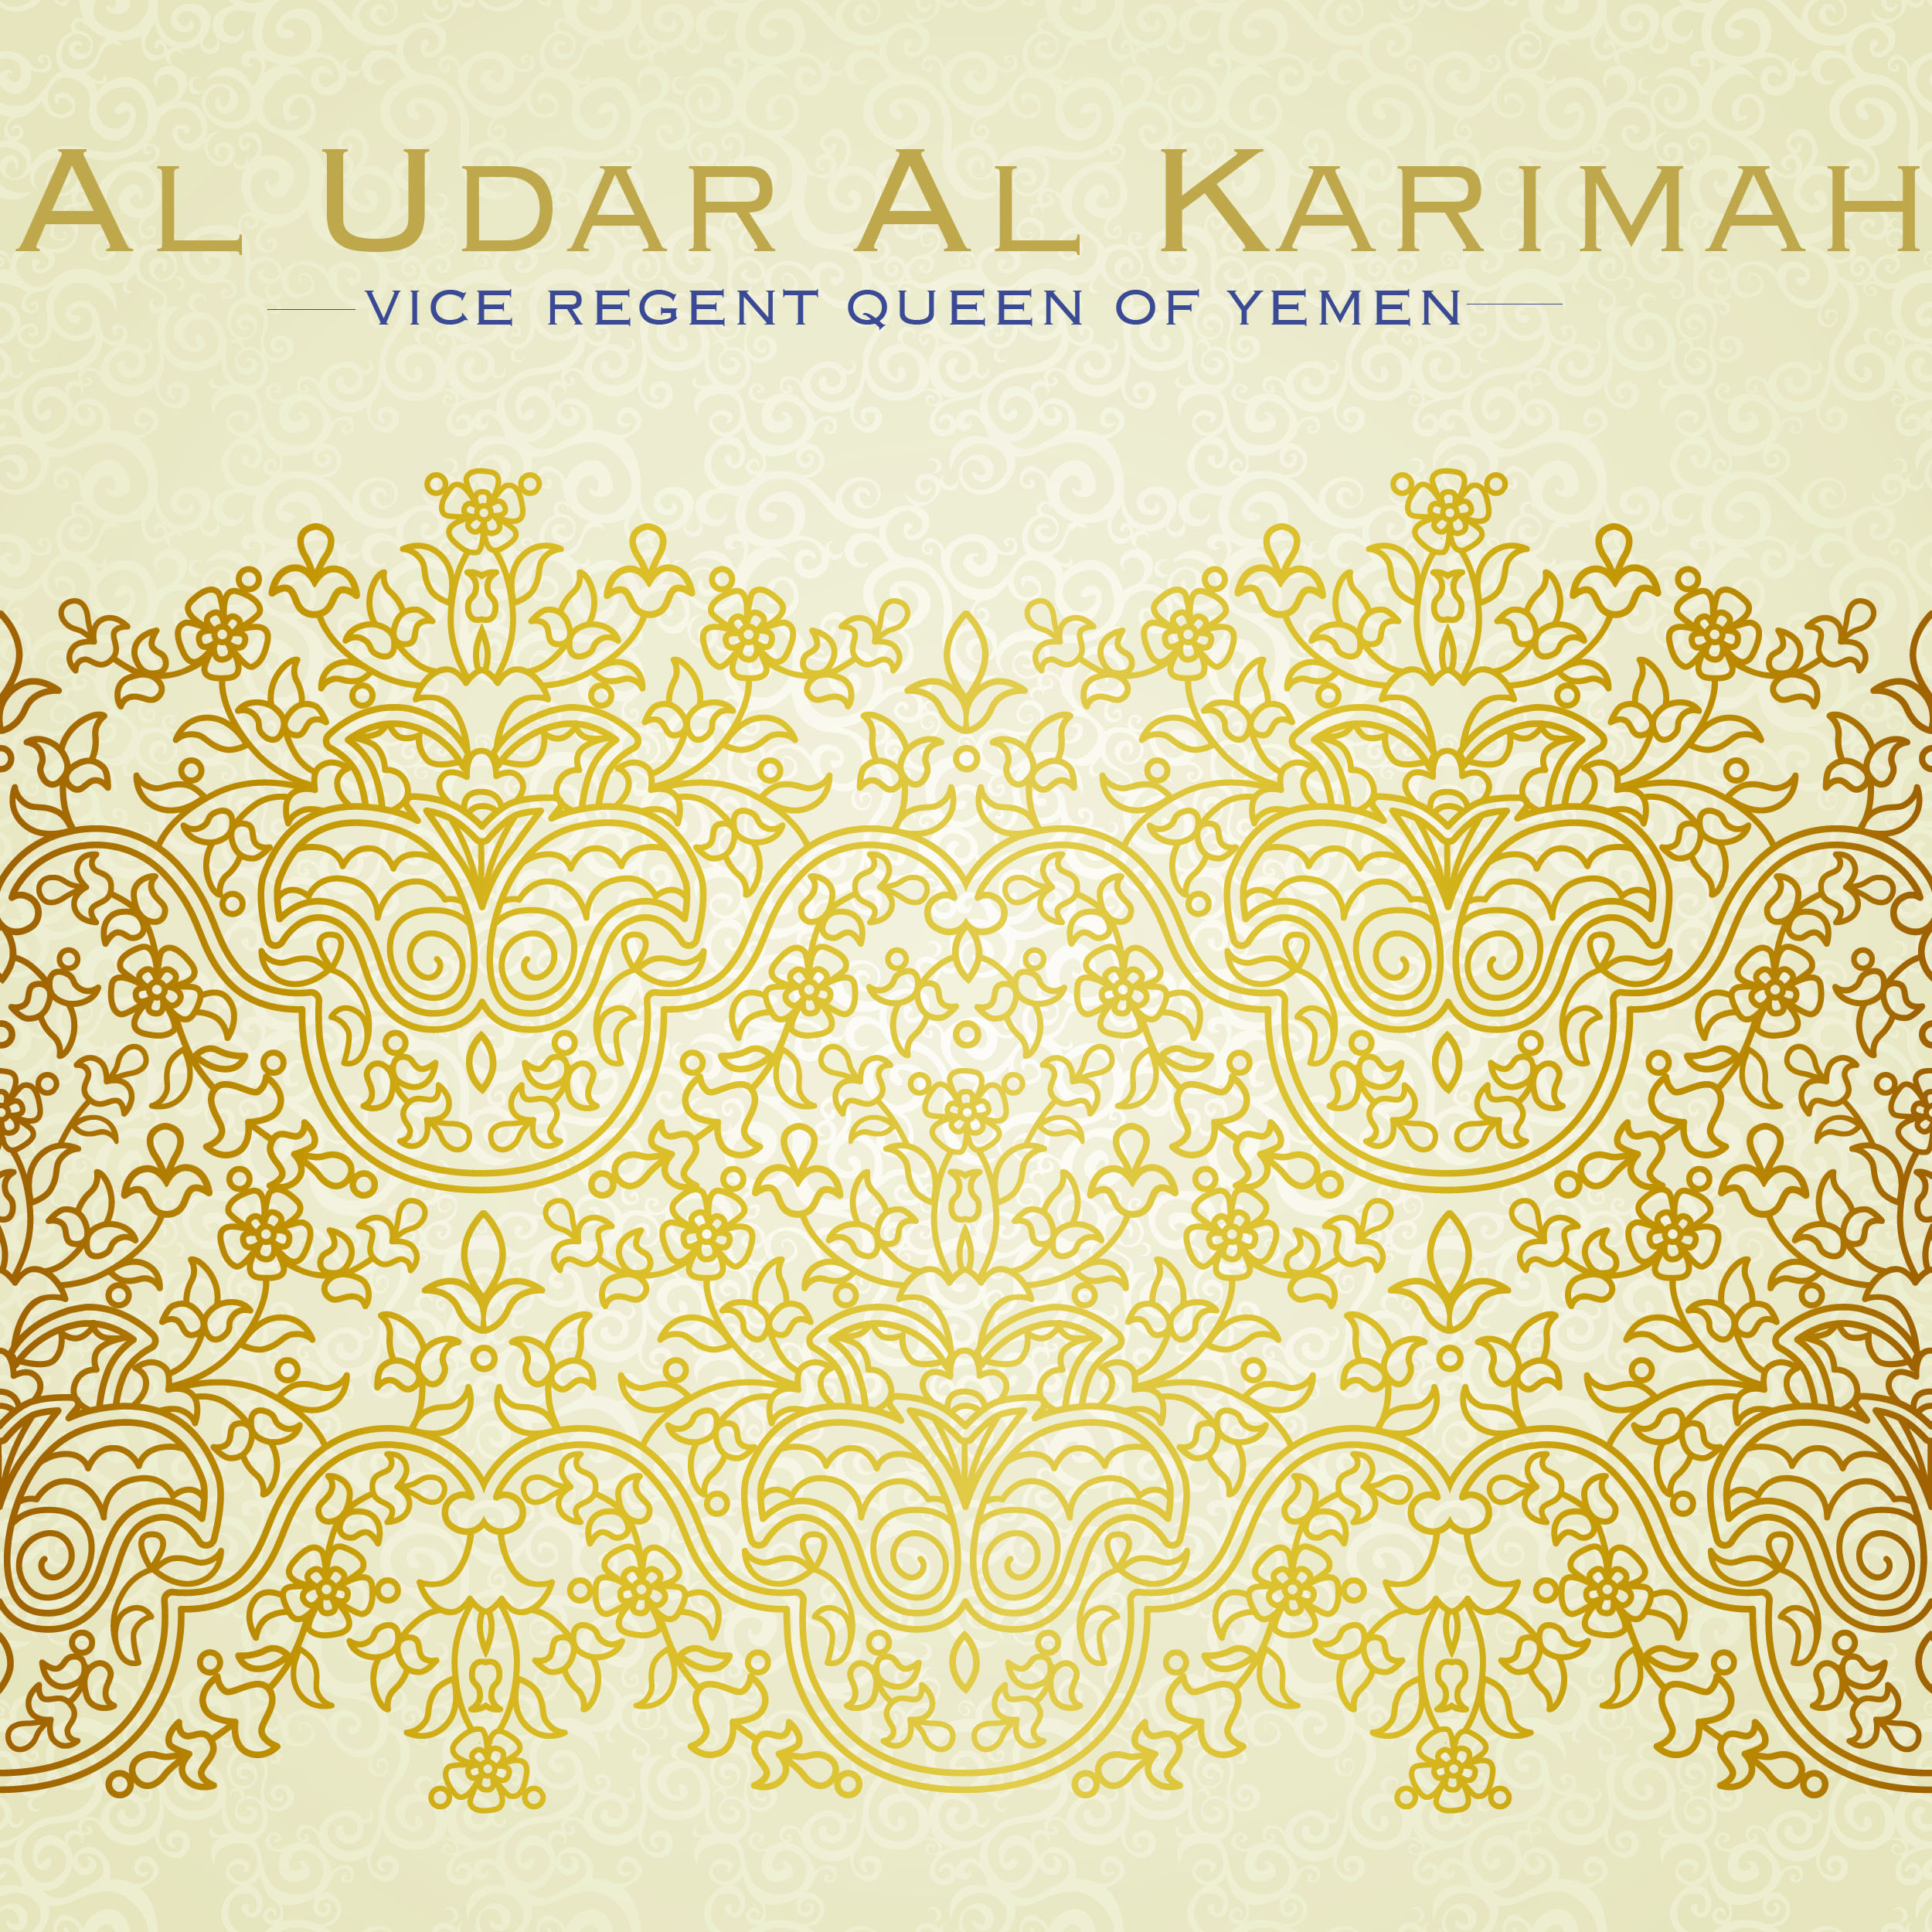 Al Udar Al Karimah- Vicegerent Queen of Yemen